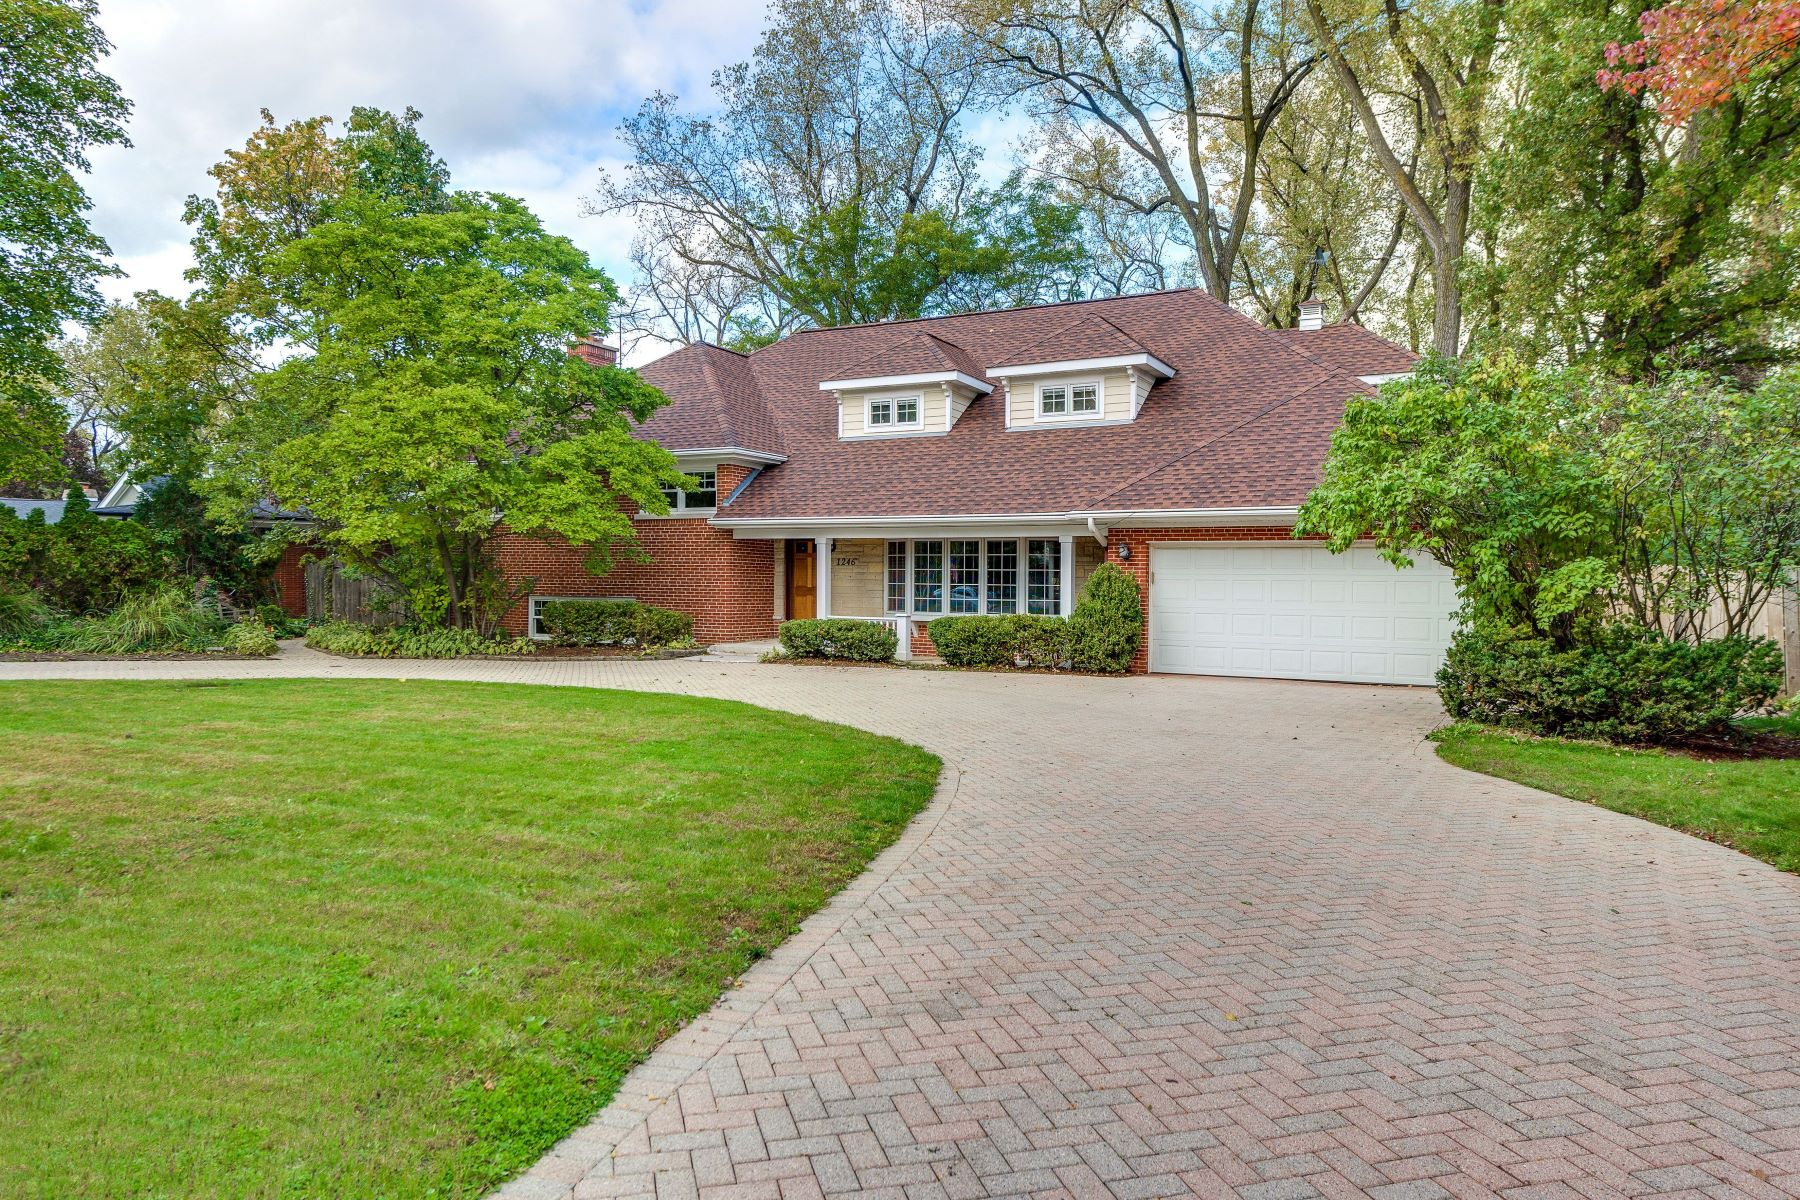 Single Family Homes for Active at Special Golf Acres Opportunity 1246 Longvalley Road Glenview, Illinois 60025 United States